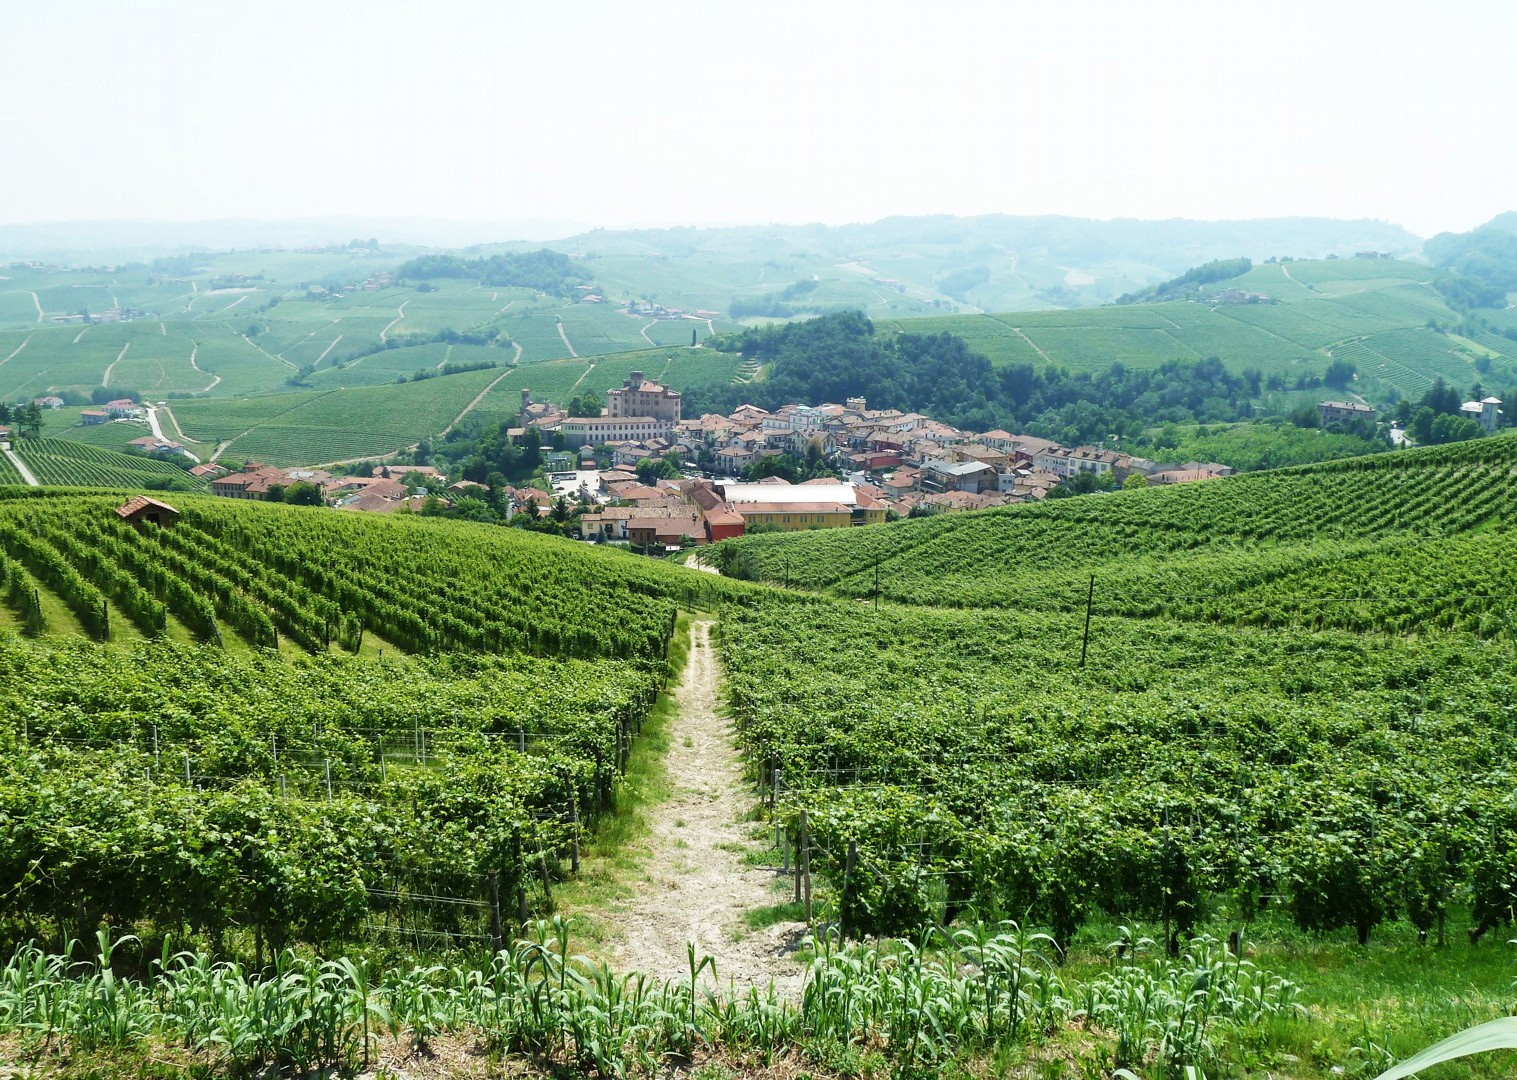 road-cycling-holiday-italy-piemonte.jpg - Italy - Piemonte - La Strada del Vino - Guided Road Cycling Holiday - Road Cycling